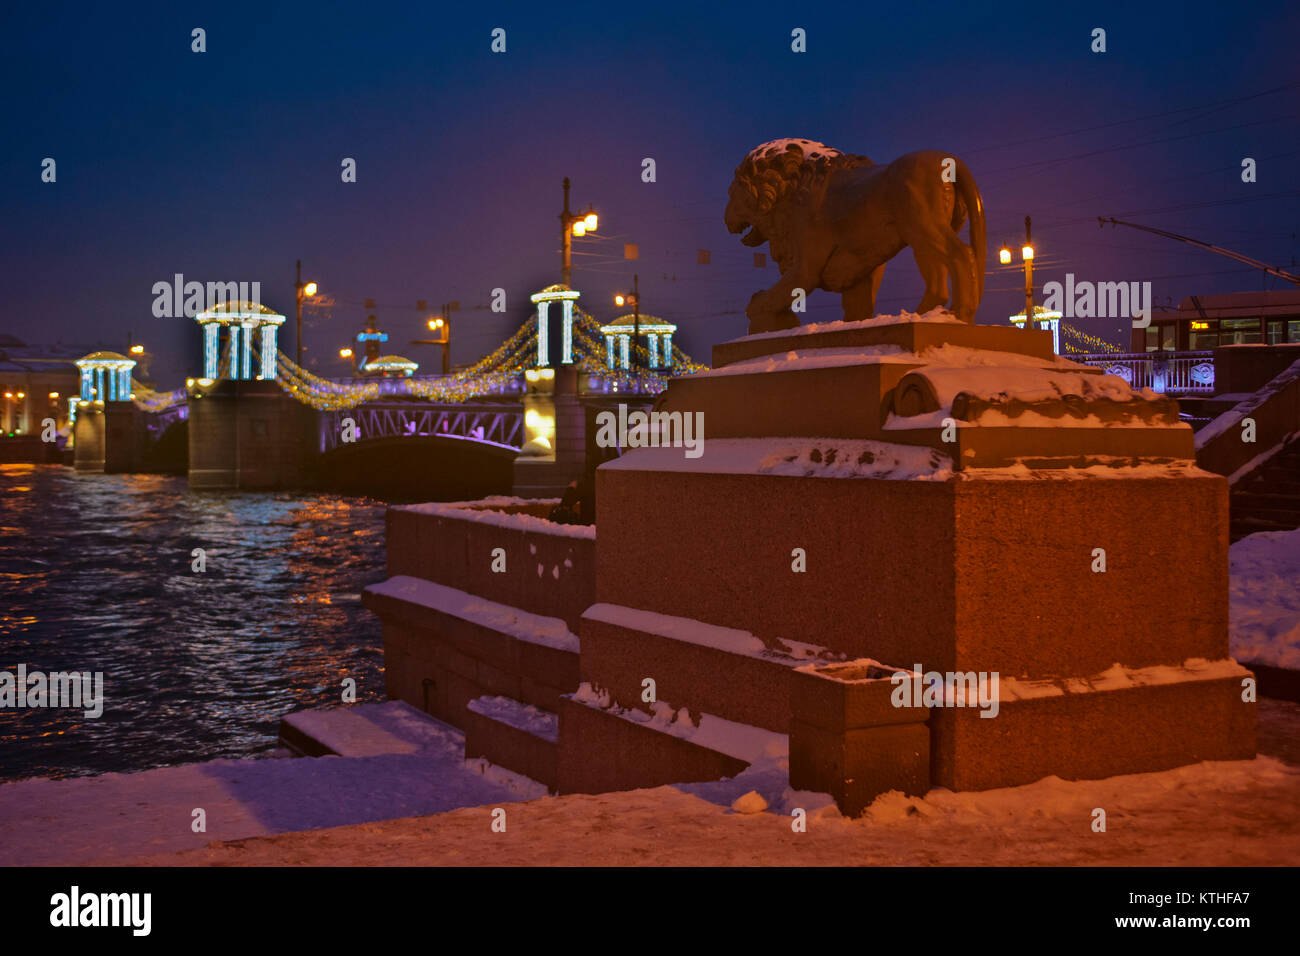 Festive New Year's illumination in St. Petersburg, Russia - Stock Image